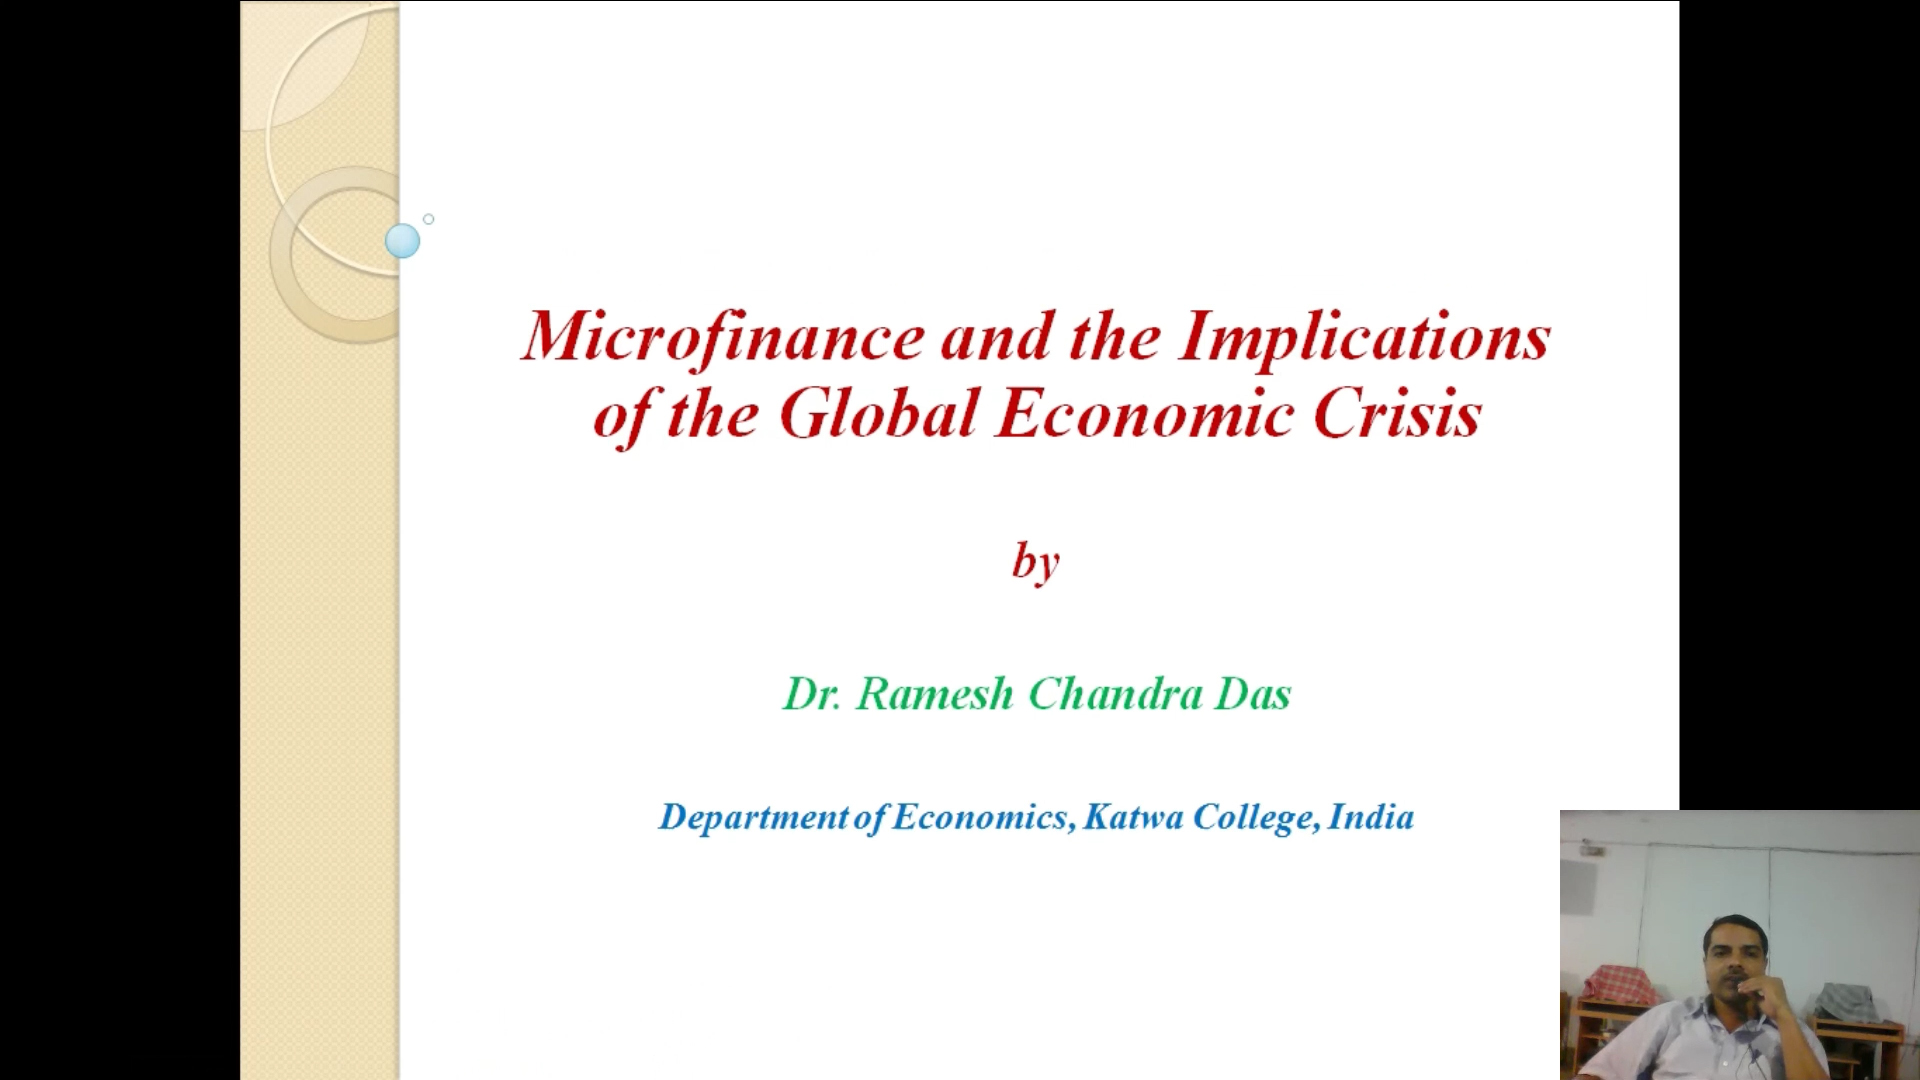 Microfinance and the Implications of the Global Economic Crisis